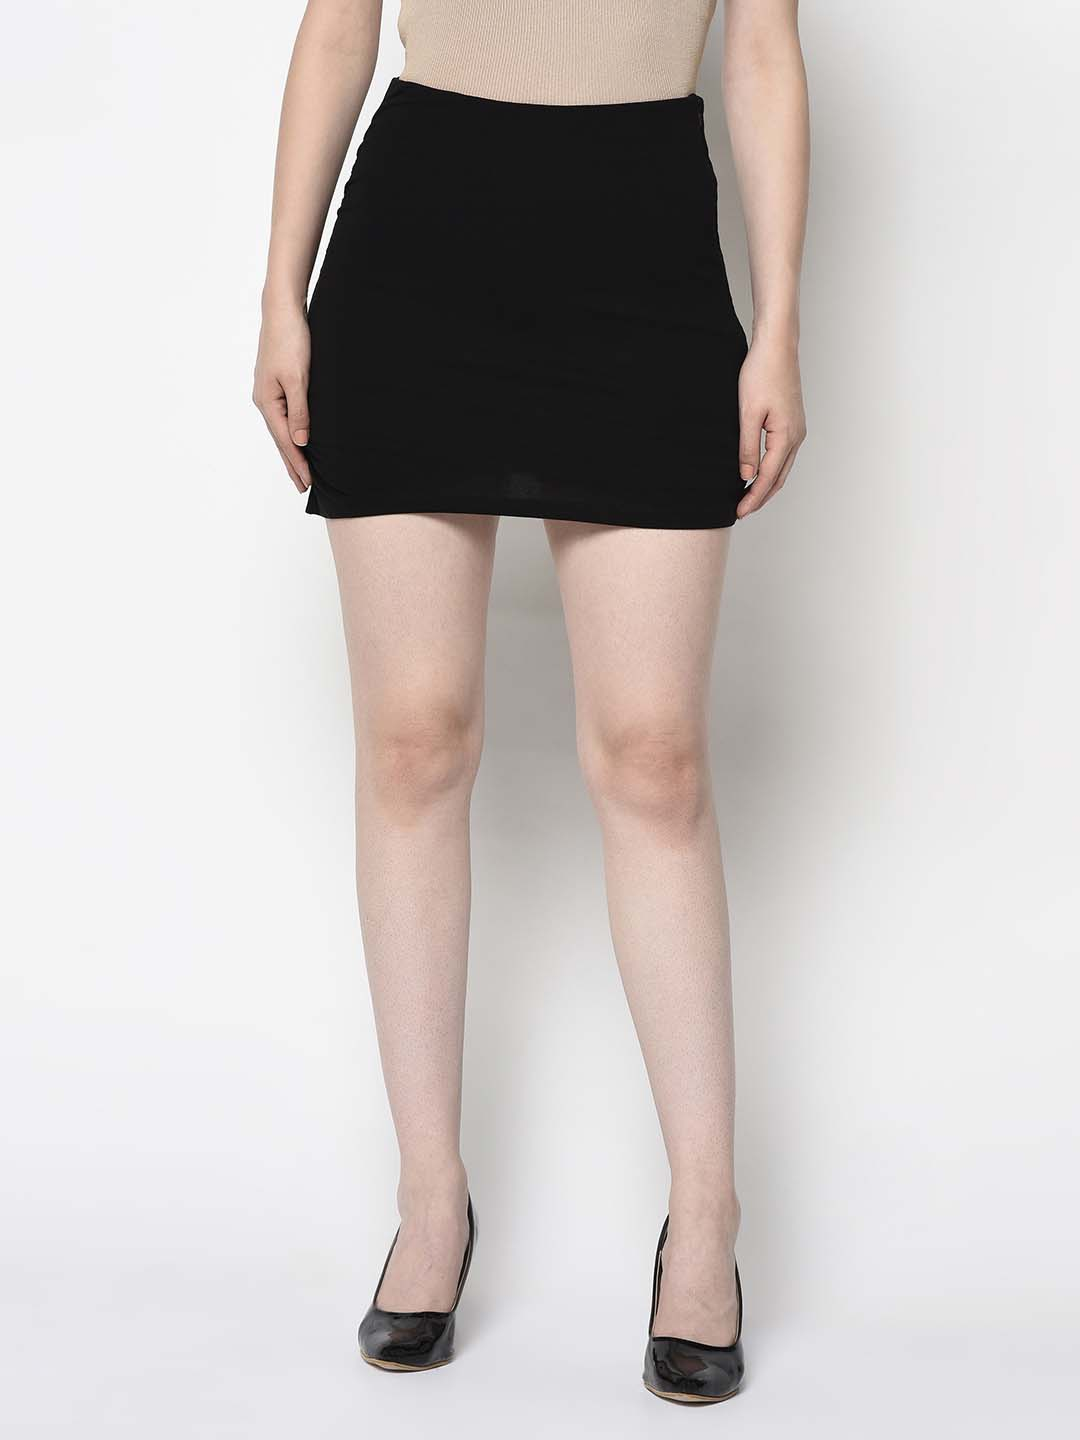 Black Curve Hugging Mini Skirt